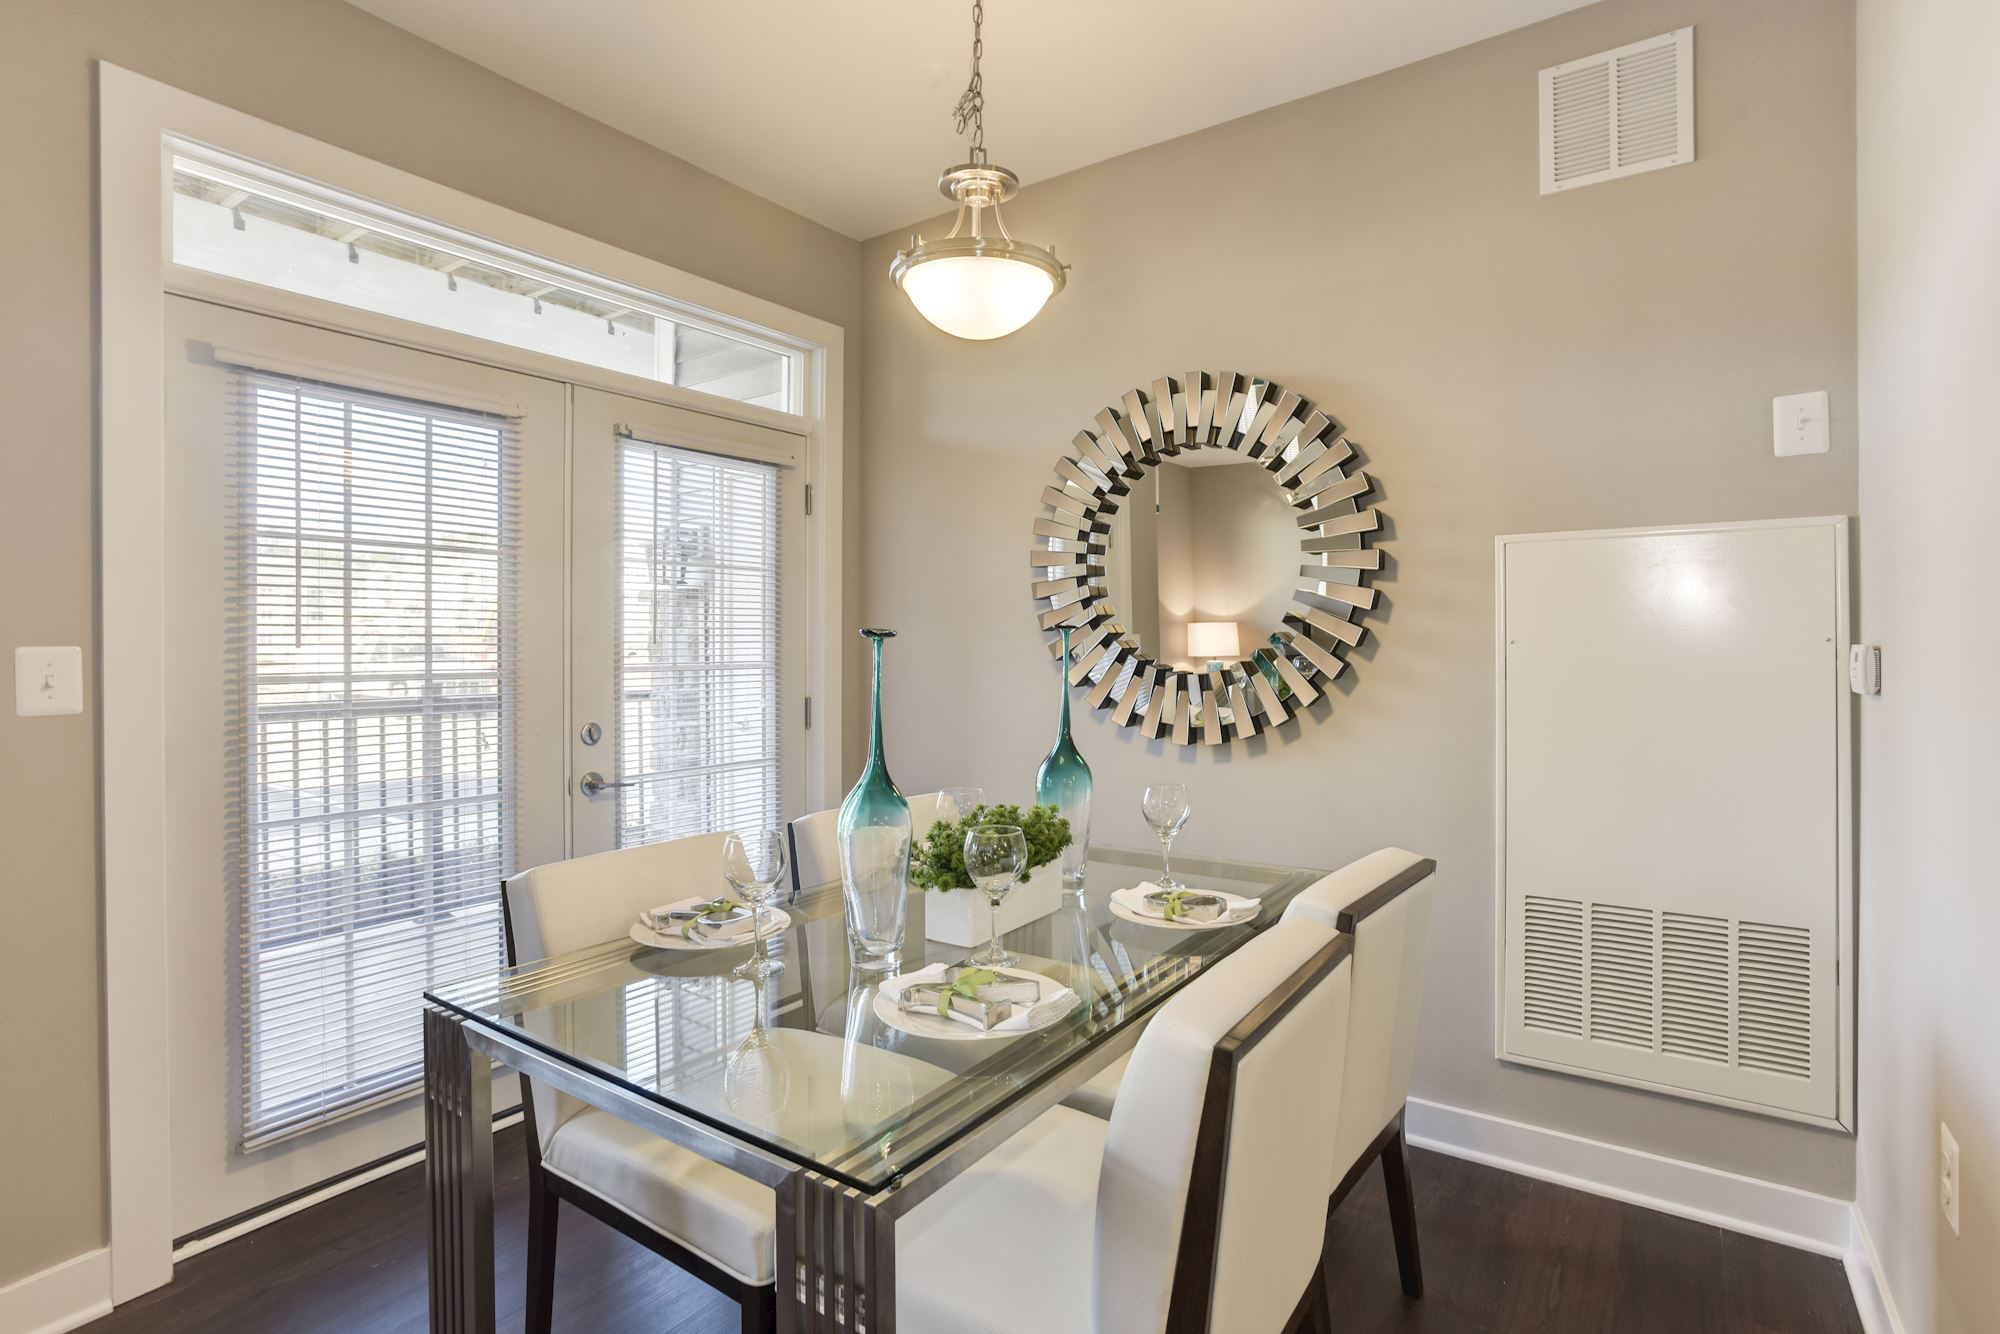 Avanti Luxury Apartments in Bel Air, MD - Dining Room